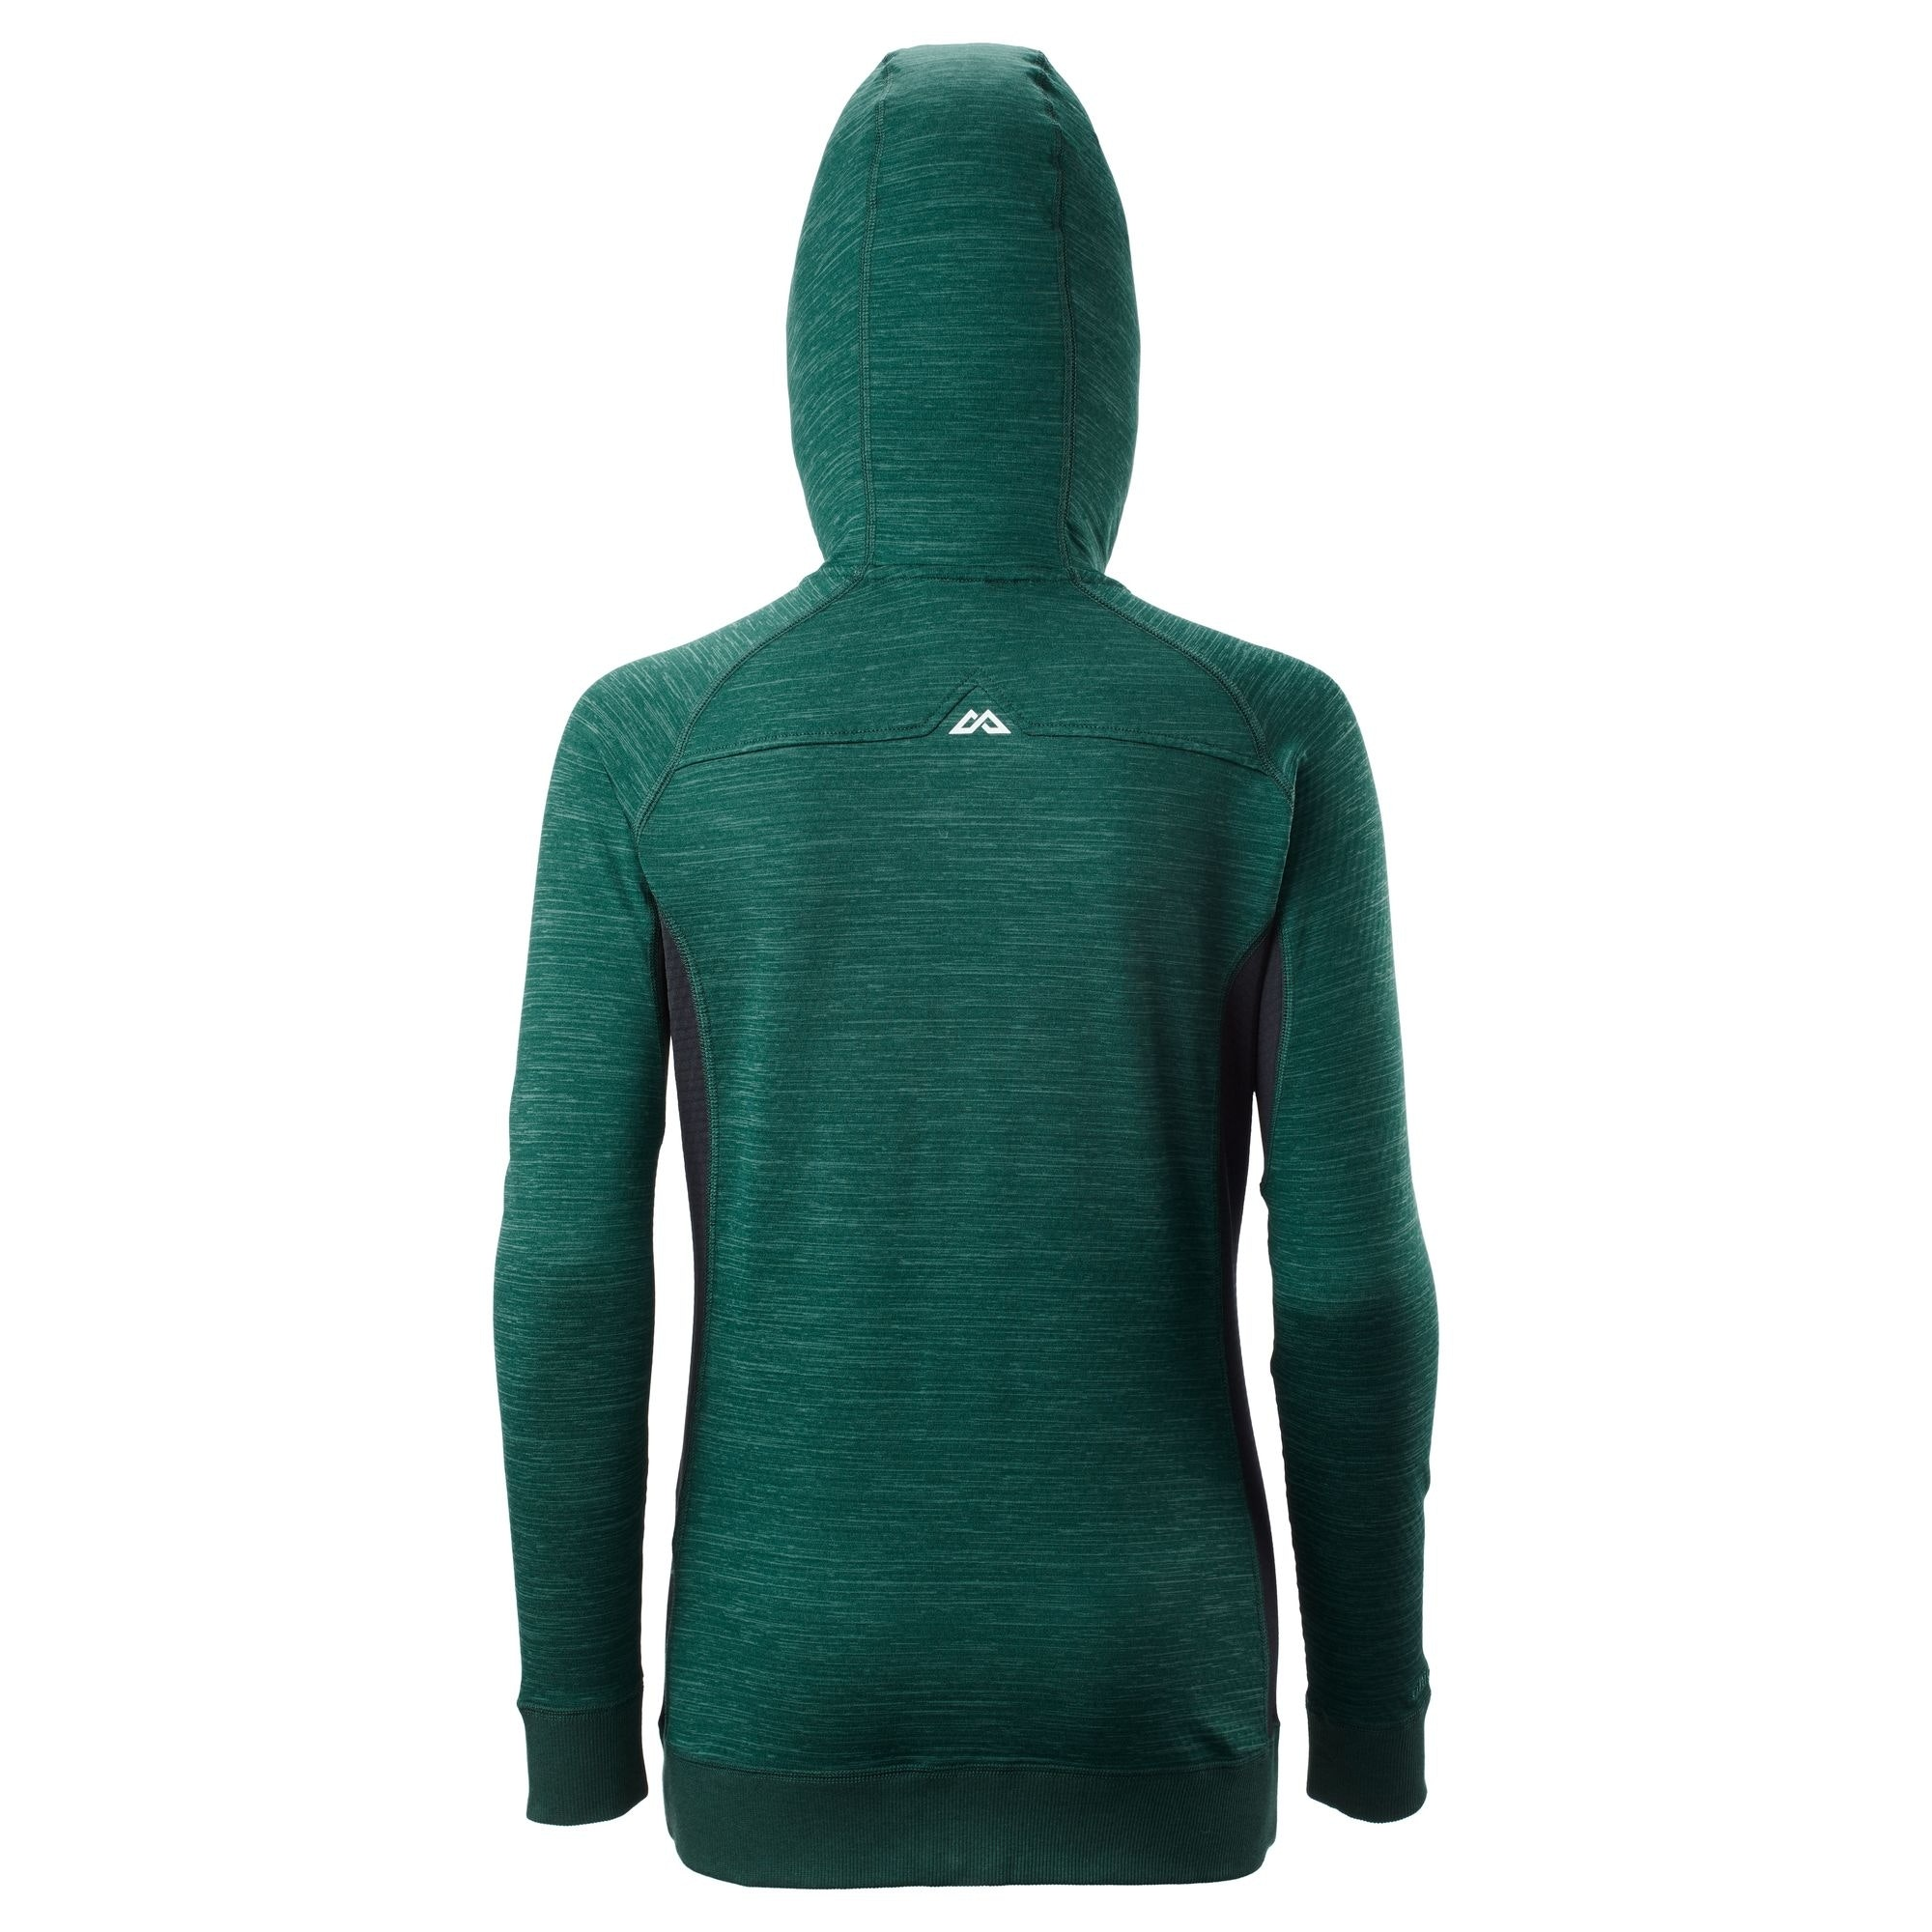 NEW-Kathmandu-Acota-Women-s-Hooded-Fleece-Lightweight-Breathable-Outdoor-Jacket thumbnail 7